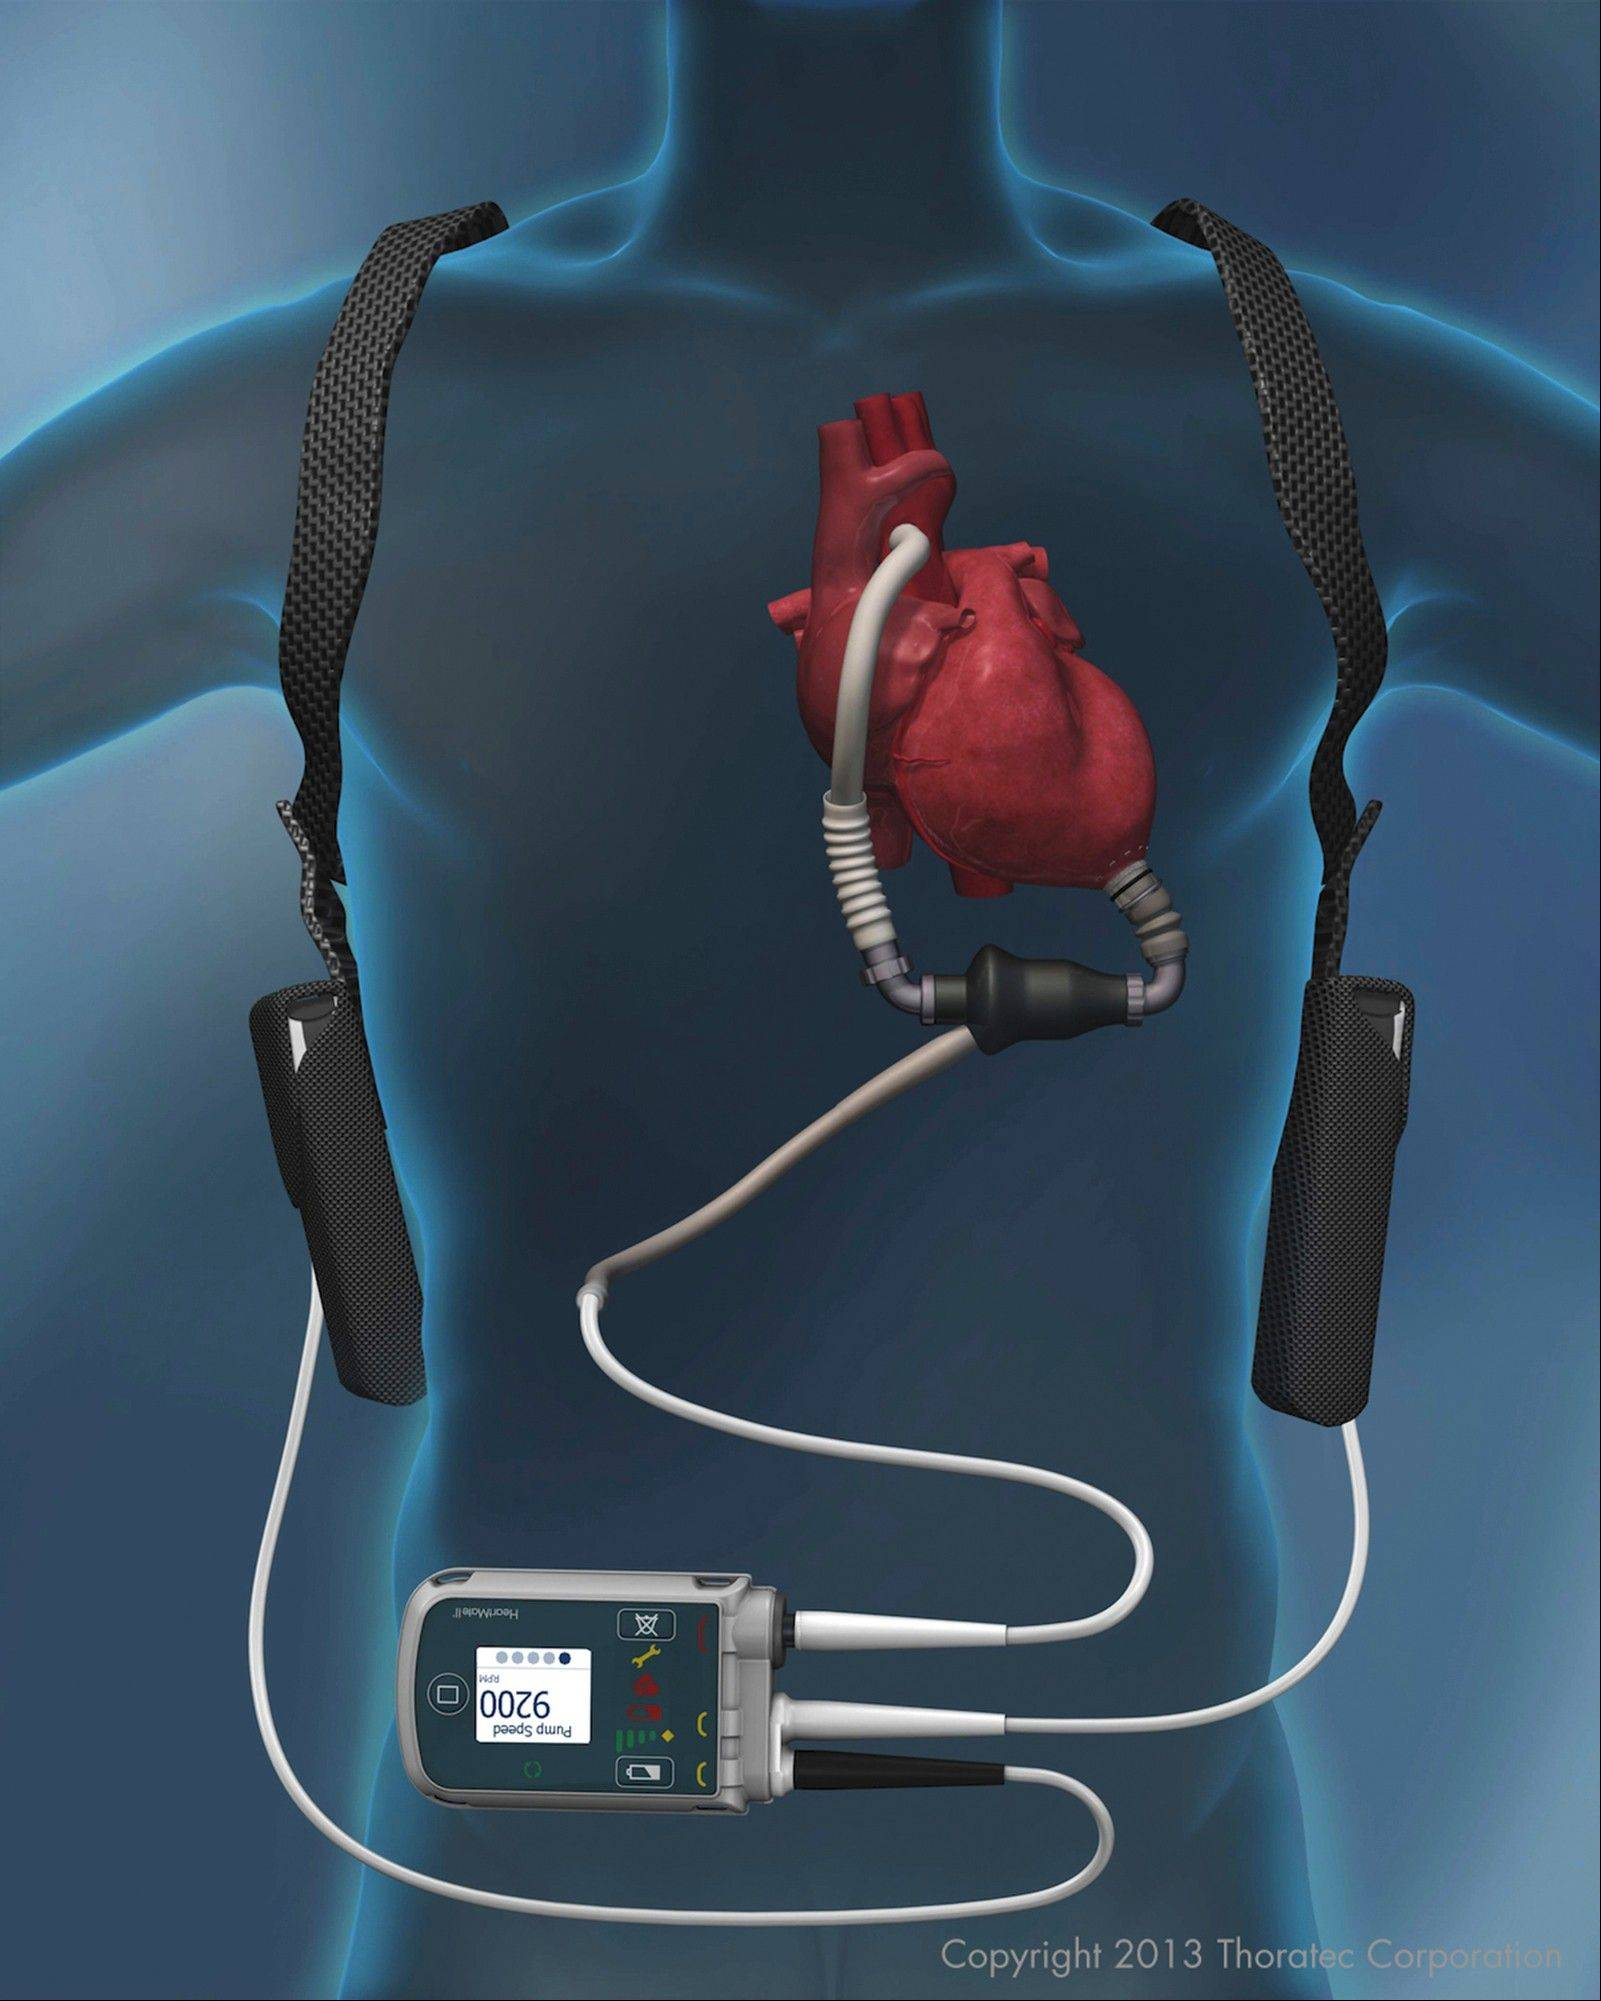 The HeartMate II was approved to keep patients healthy until transplantation. But the device theoretically could work for at least 17 years, according to the head of the company that makes it.